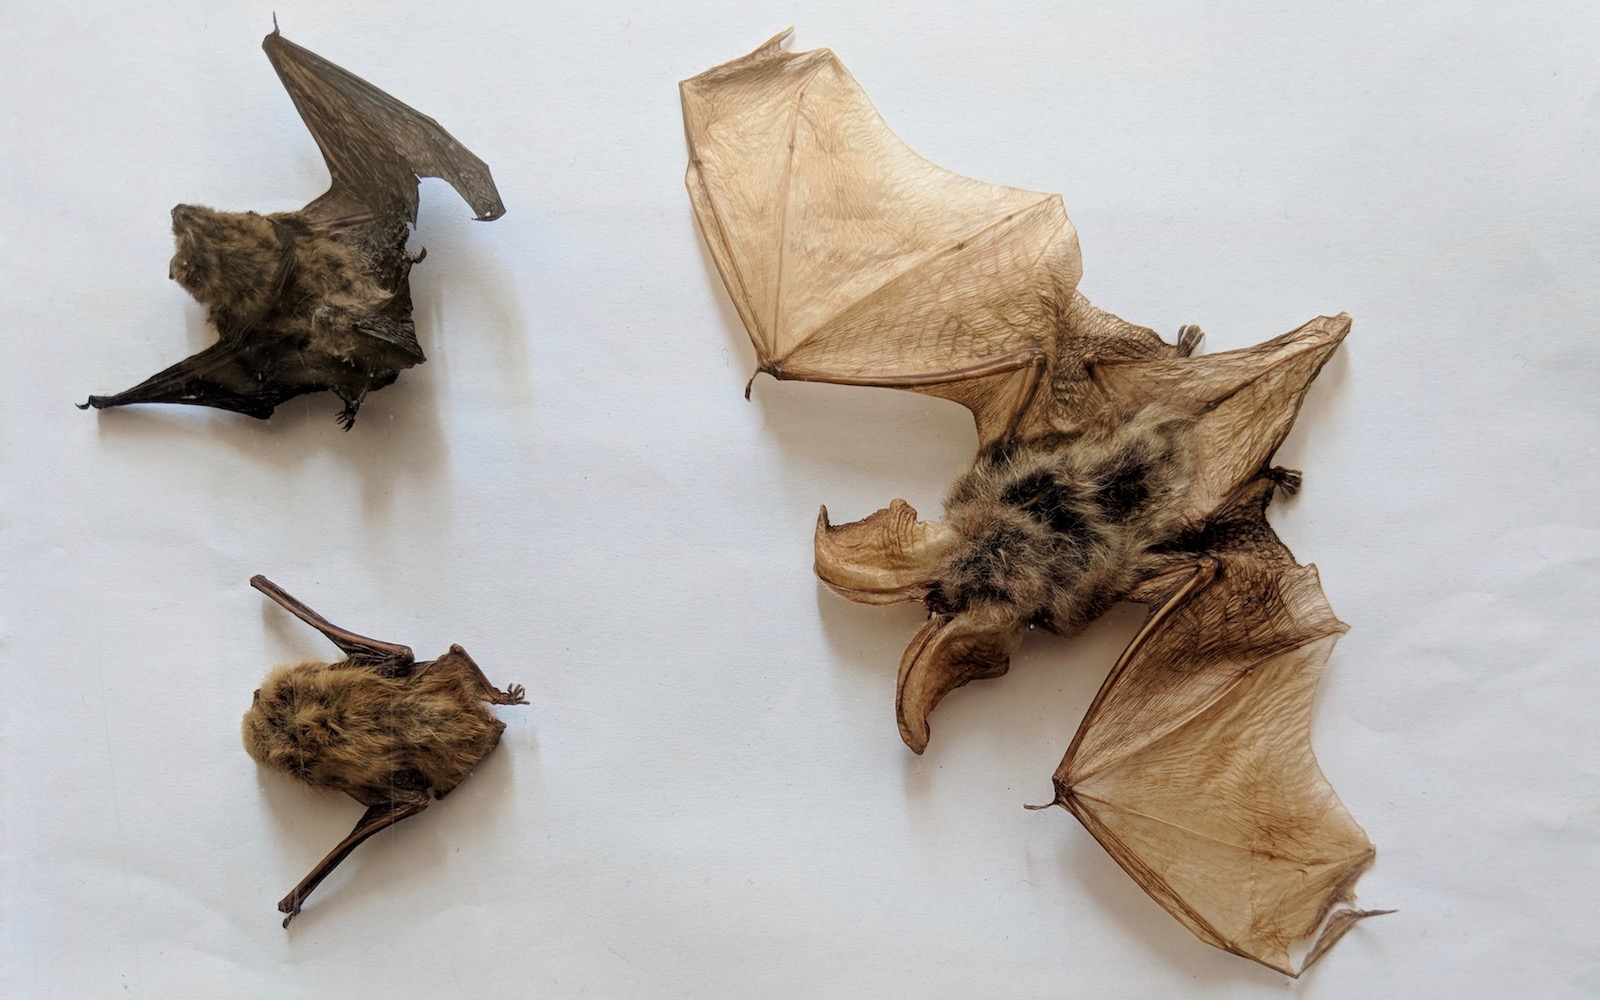 bats at the Mafra Palace Library in Portugal